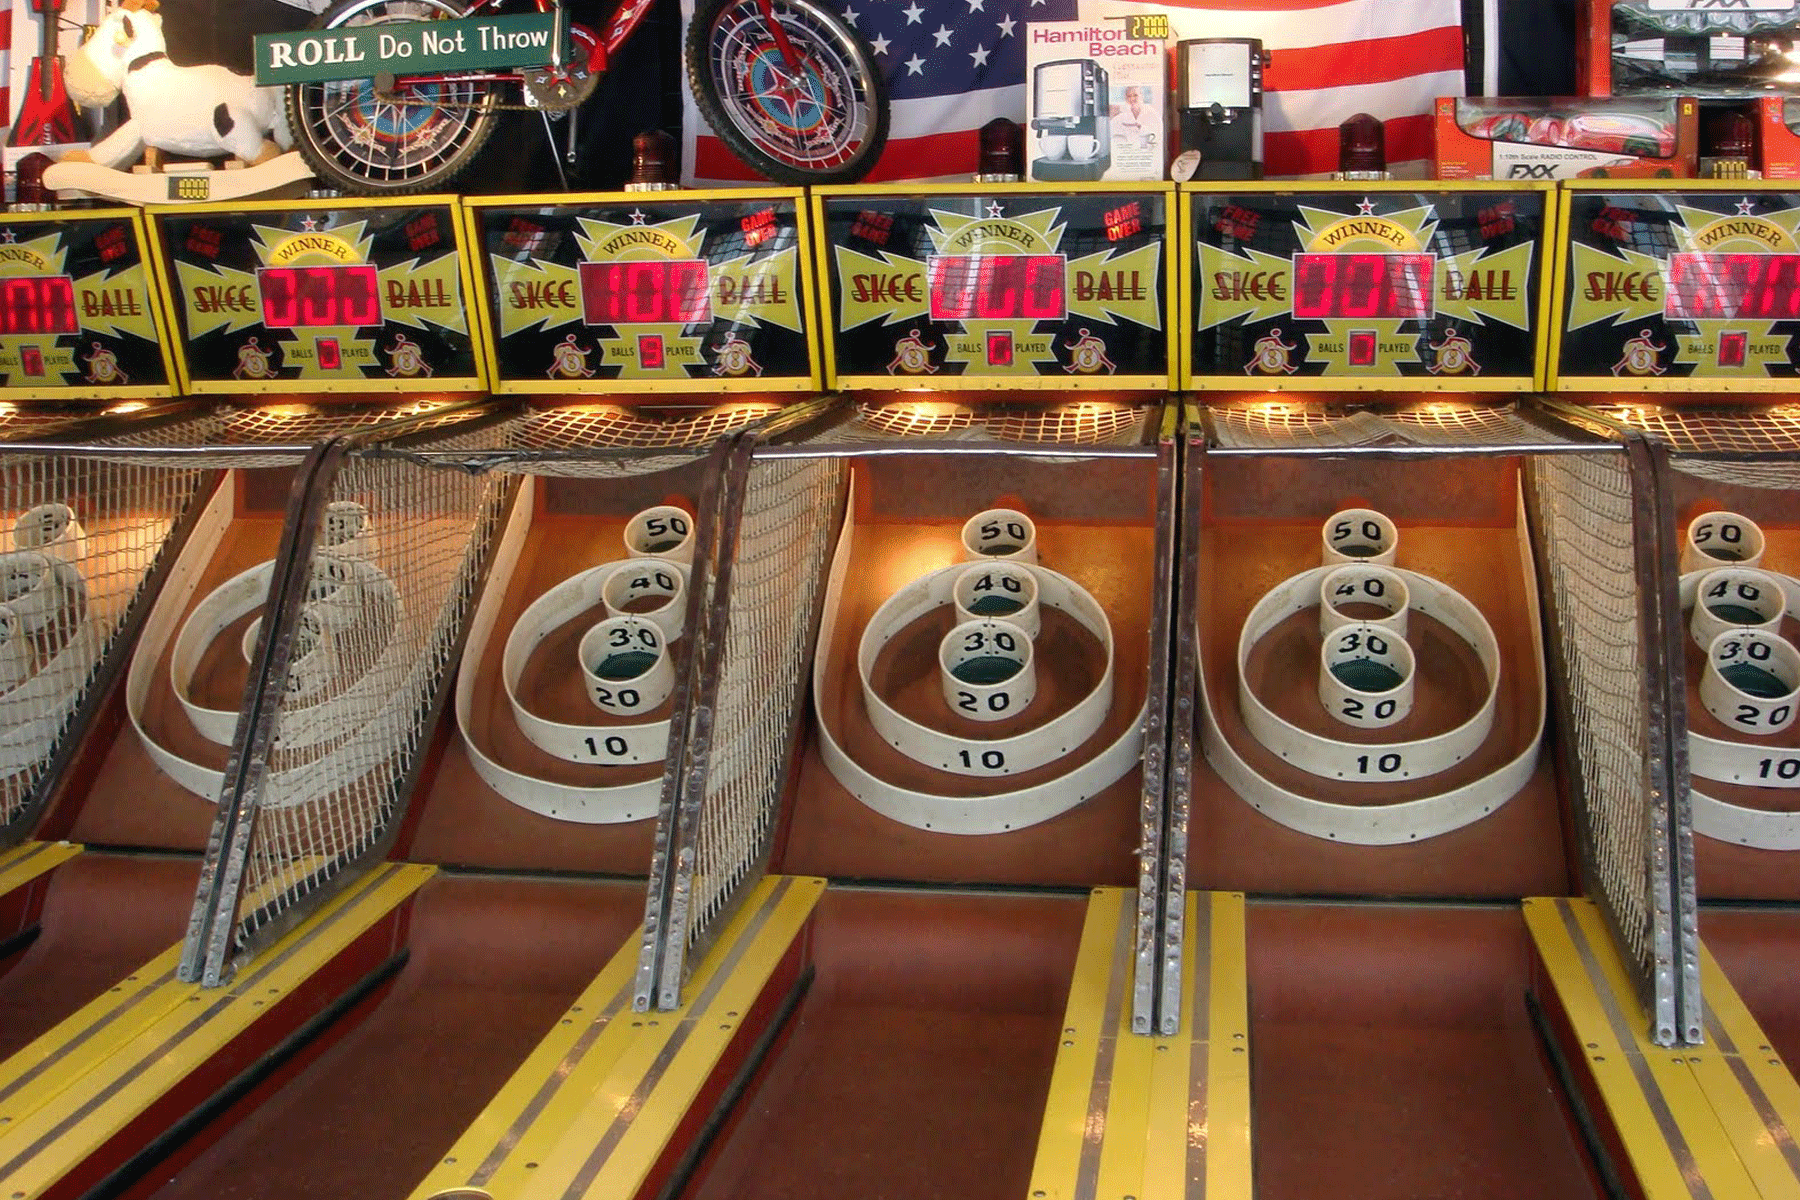 Riviera presents: SXSW Tech Skeeball